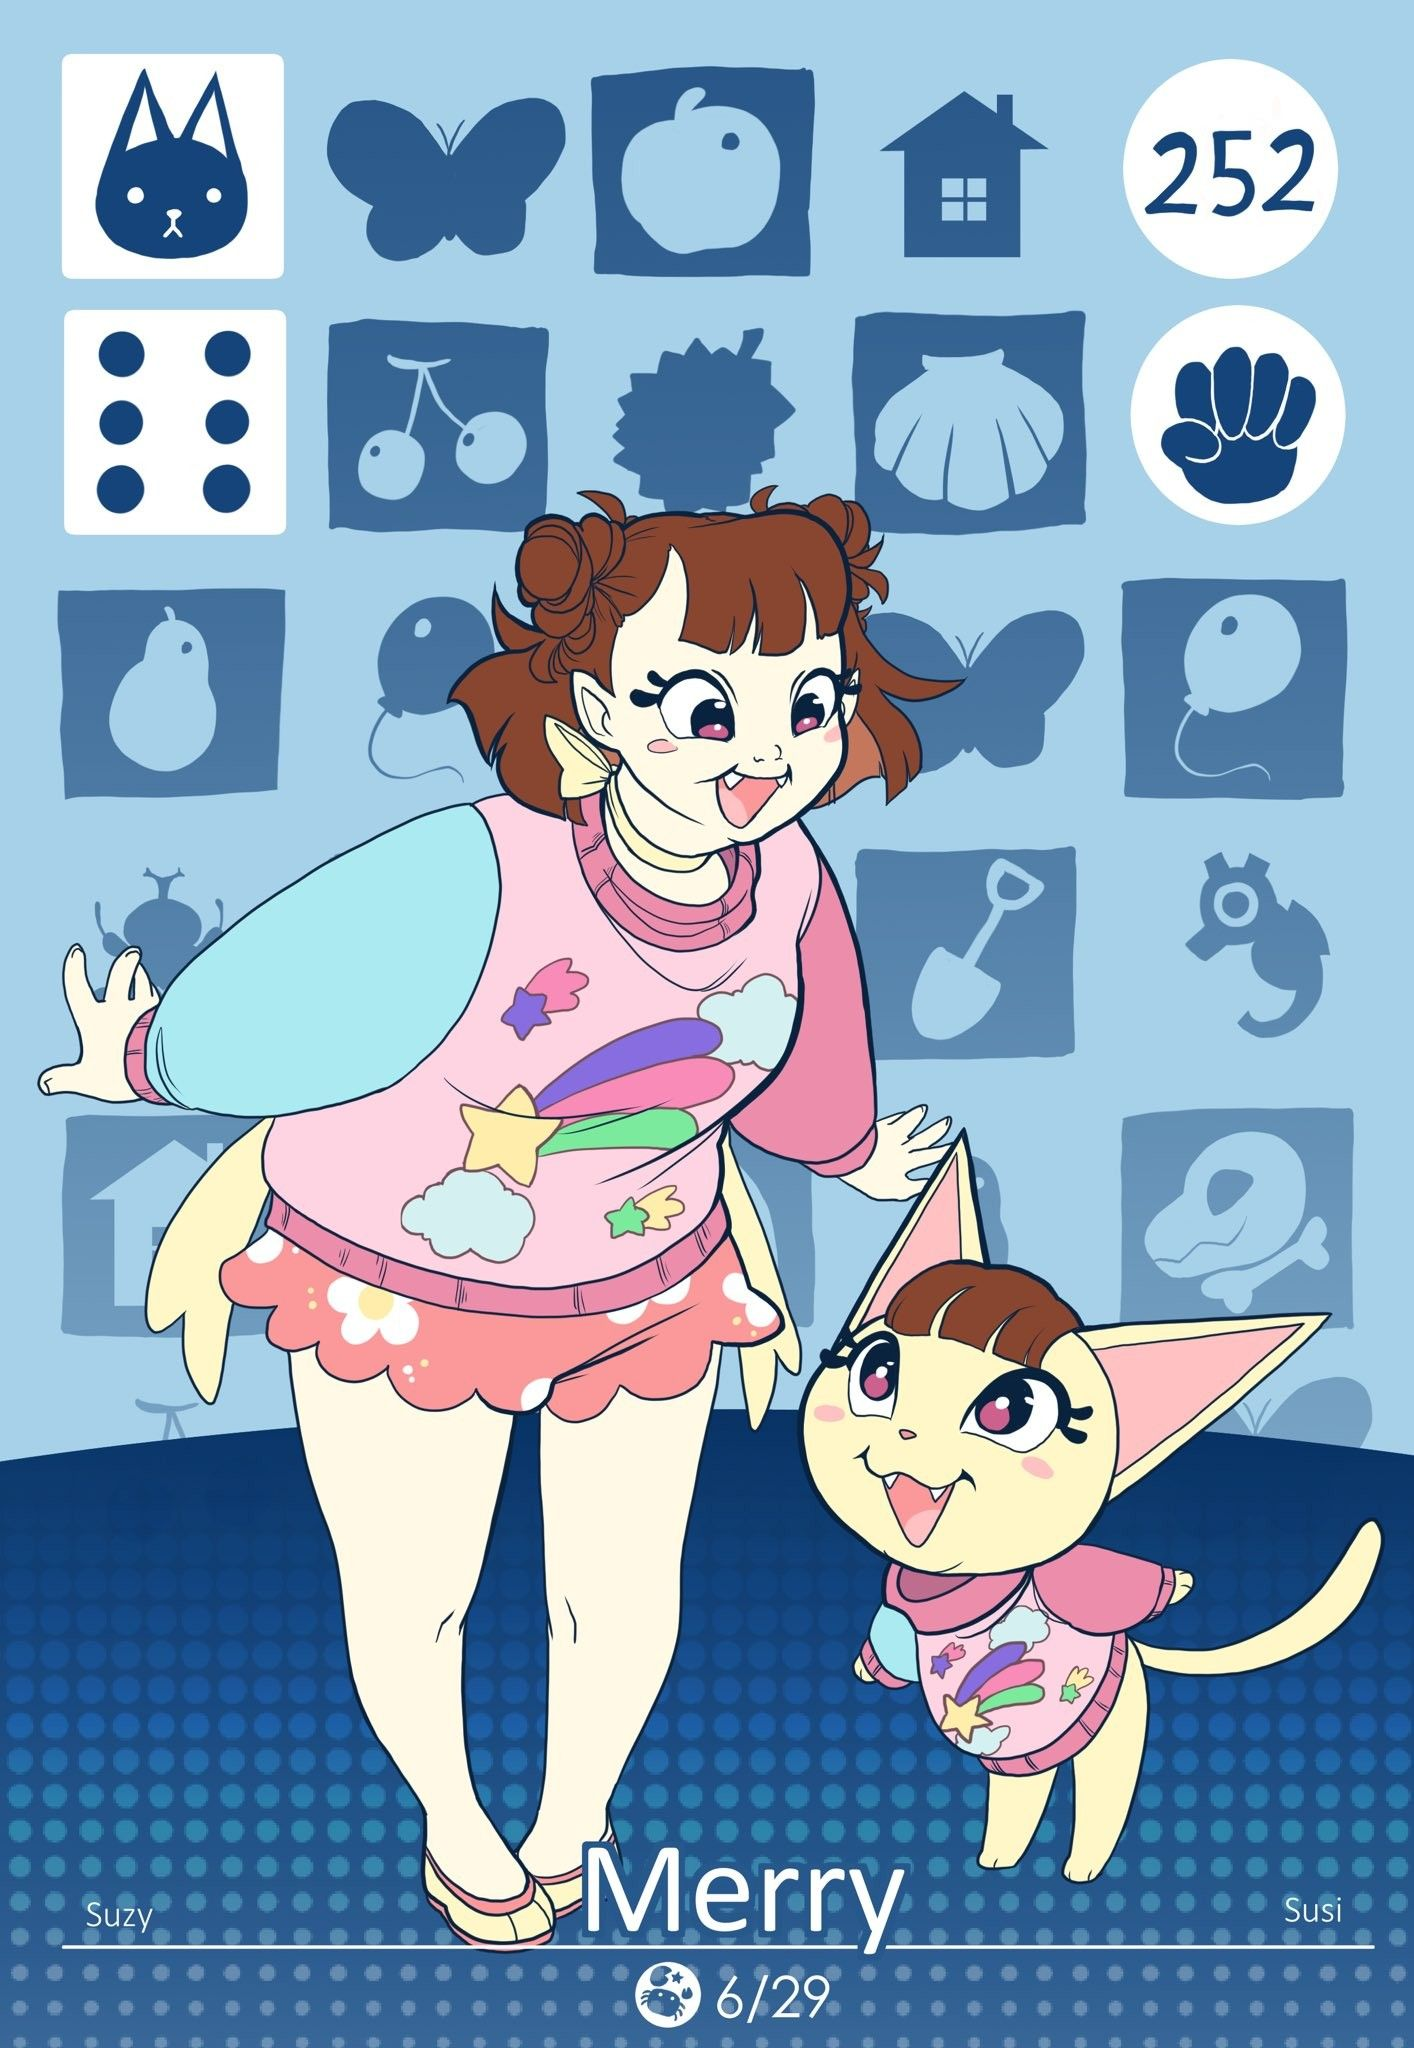 Pin By S Holly On Ginganinjaowo In 2020 Character Design Character Design Inspiration Animal Crossing